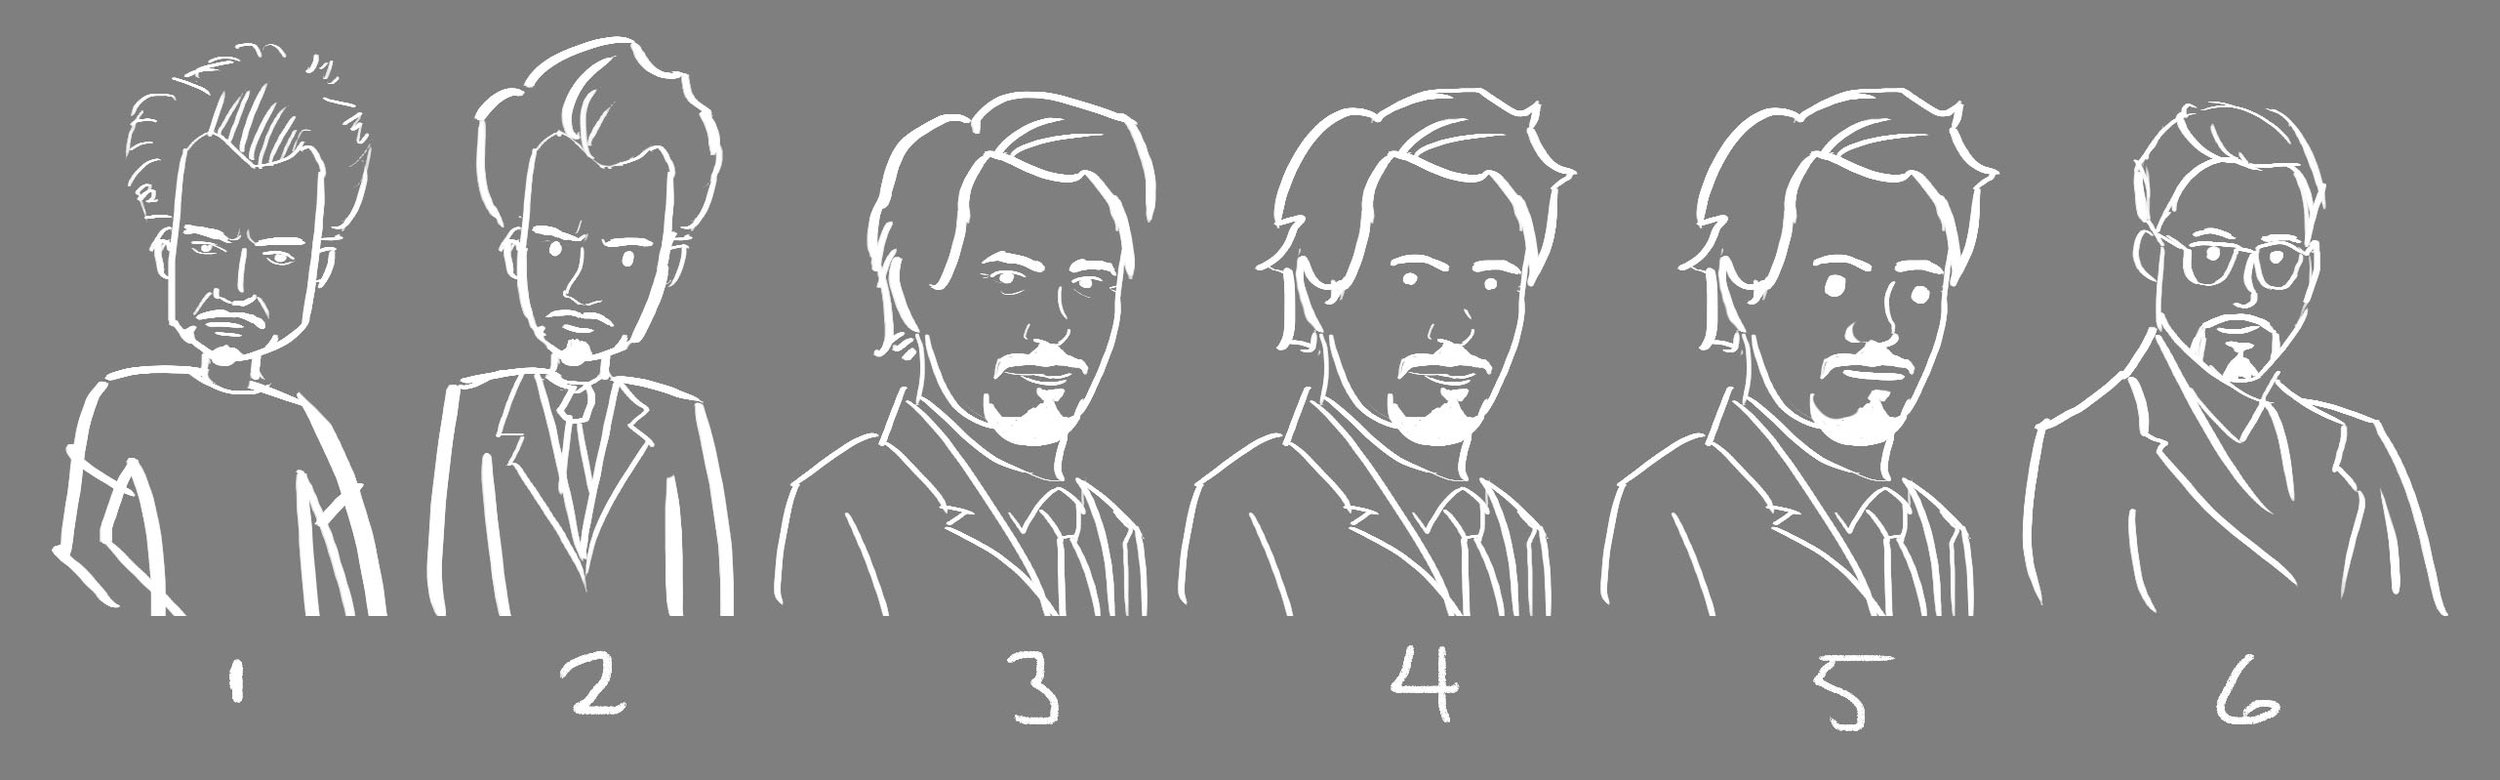 "The main character, Tony, was described as ""looking like Robert Downey, Jr."" These are different style options for the client to decide how cartoonish or realistic the illustrations would be."